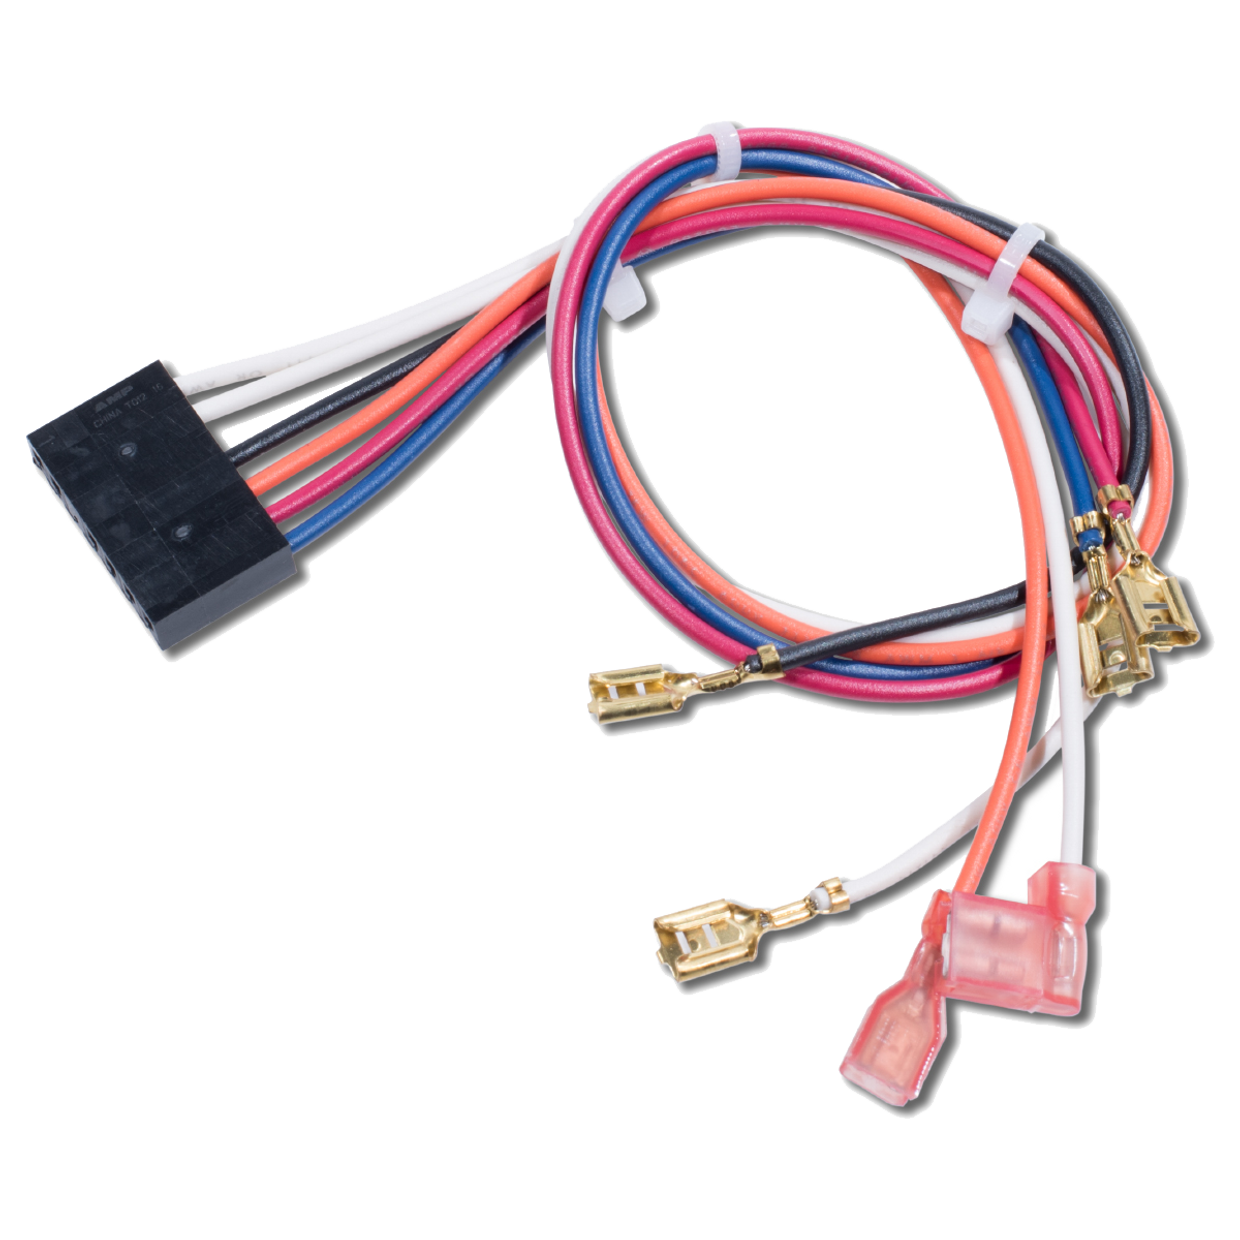 041C5830- Wire Harness Kit, High Voltage